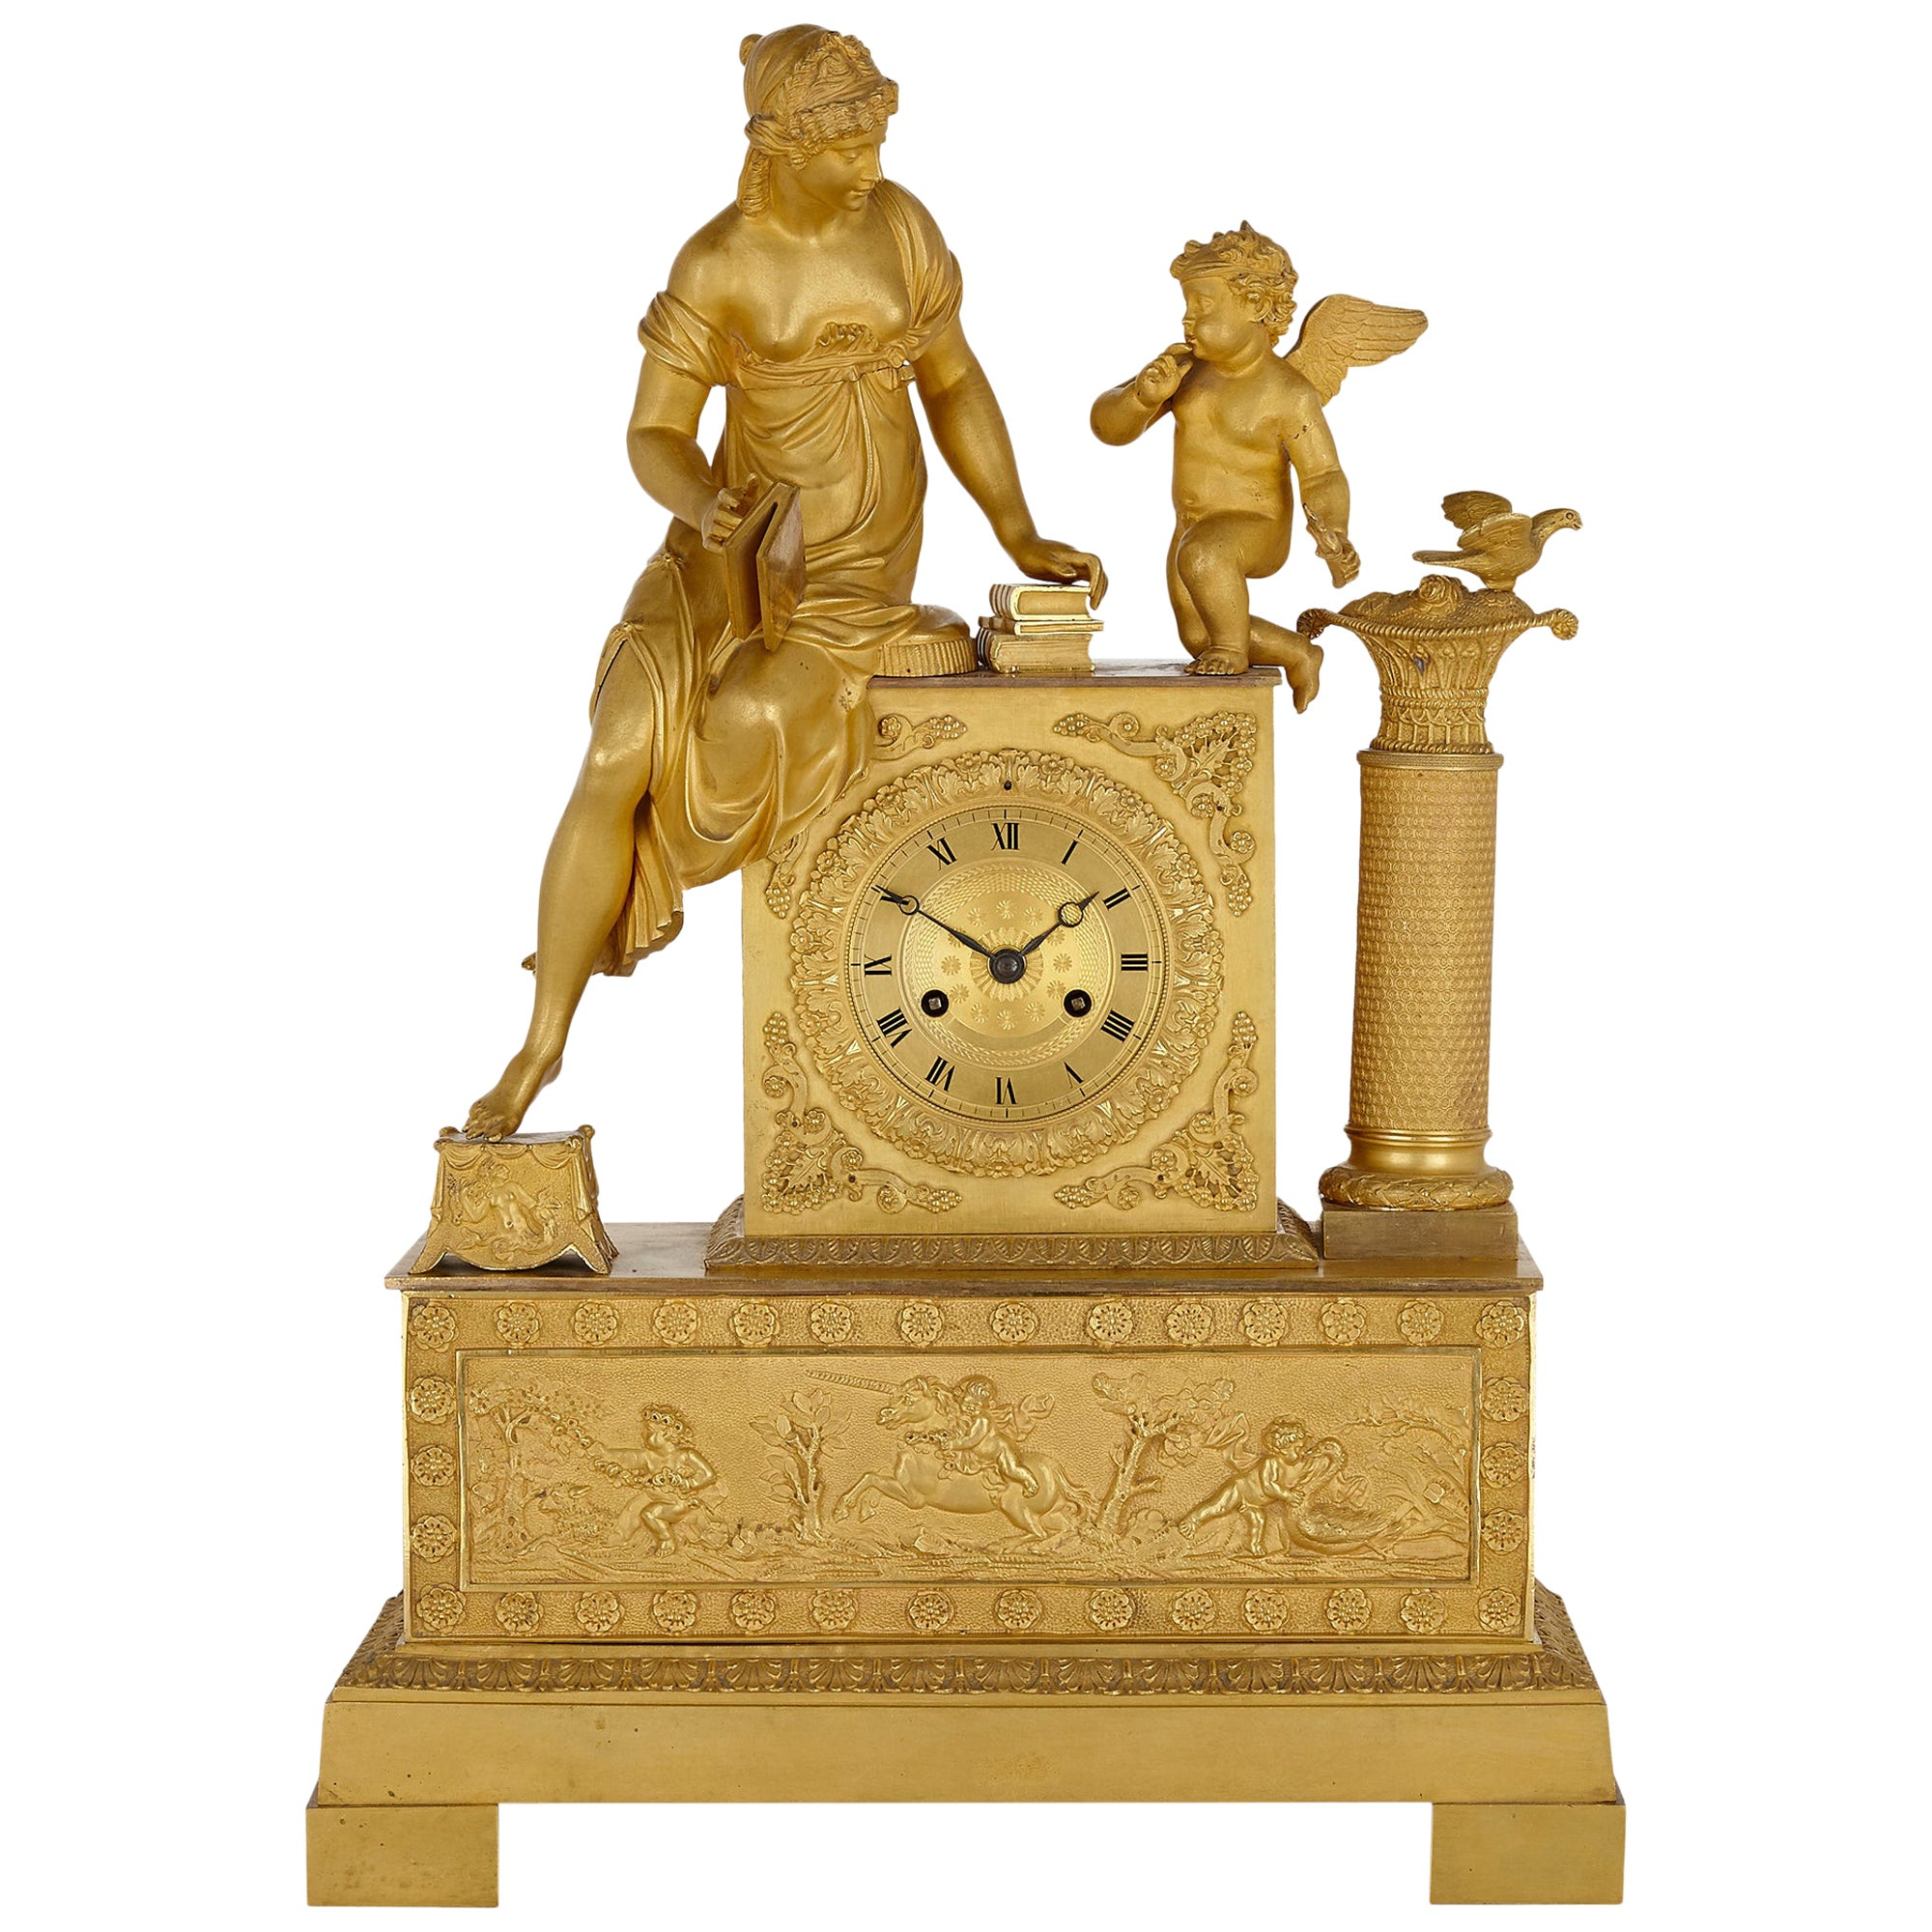 French Empire Gilt Bronze Mantel Clock with Venus and Cupid